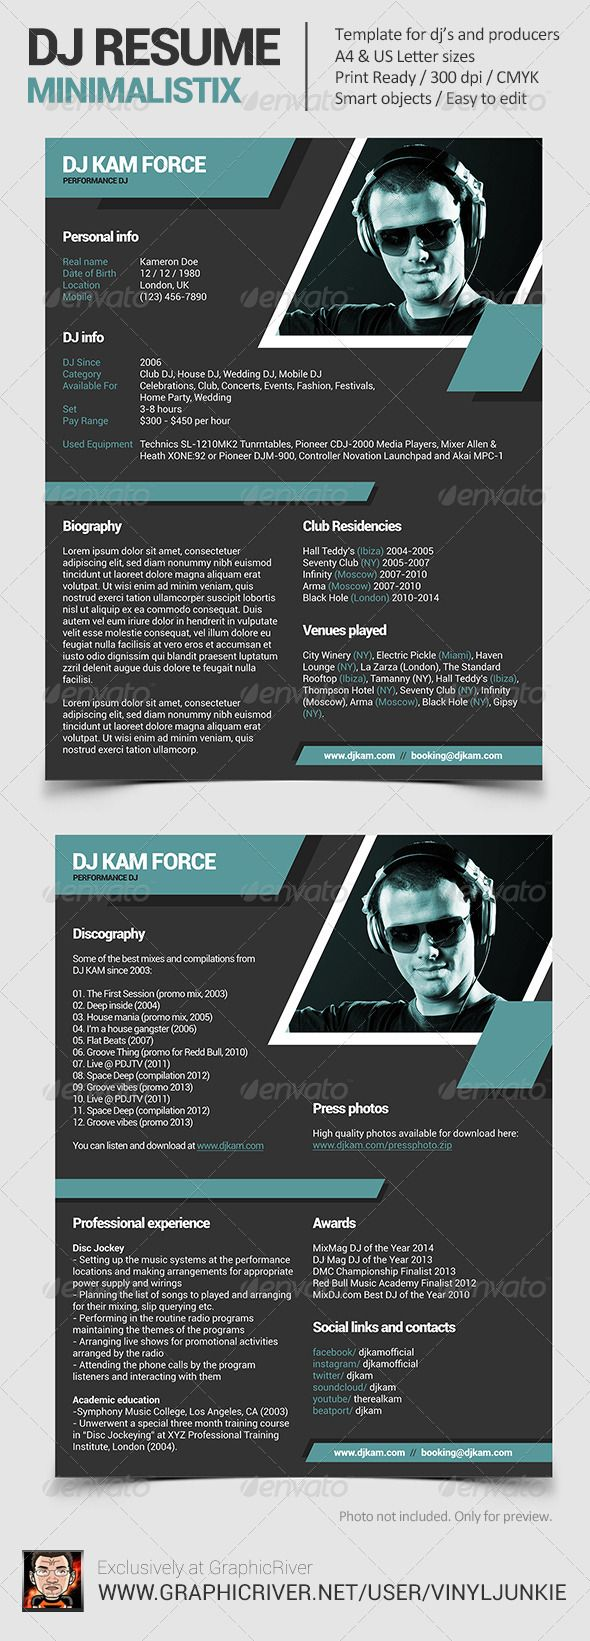 15 best images about dj press kit and dj resume templates for Dj biography template